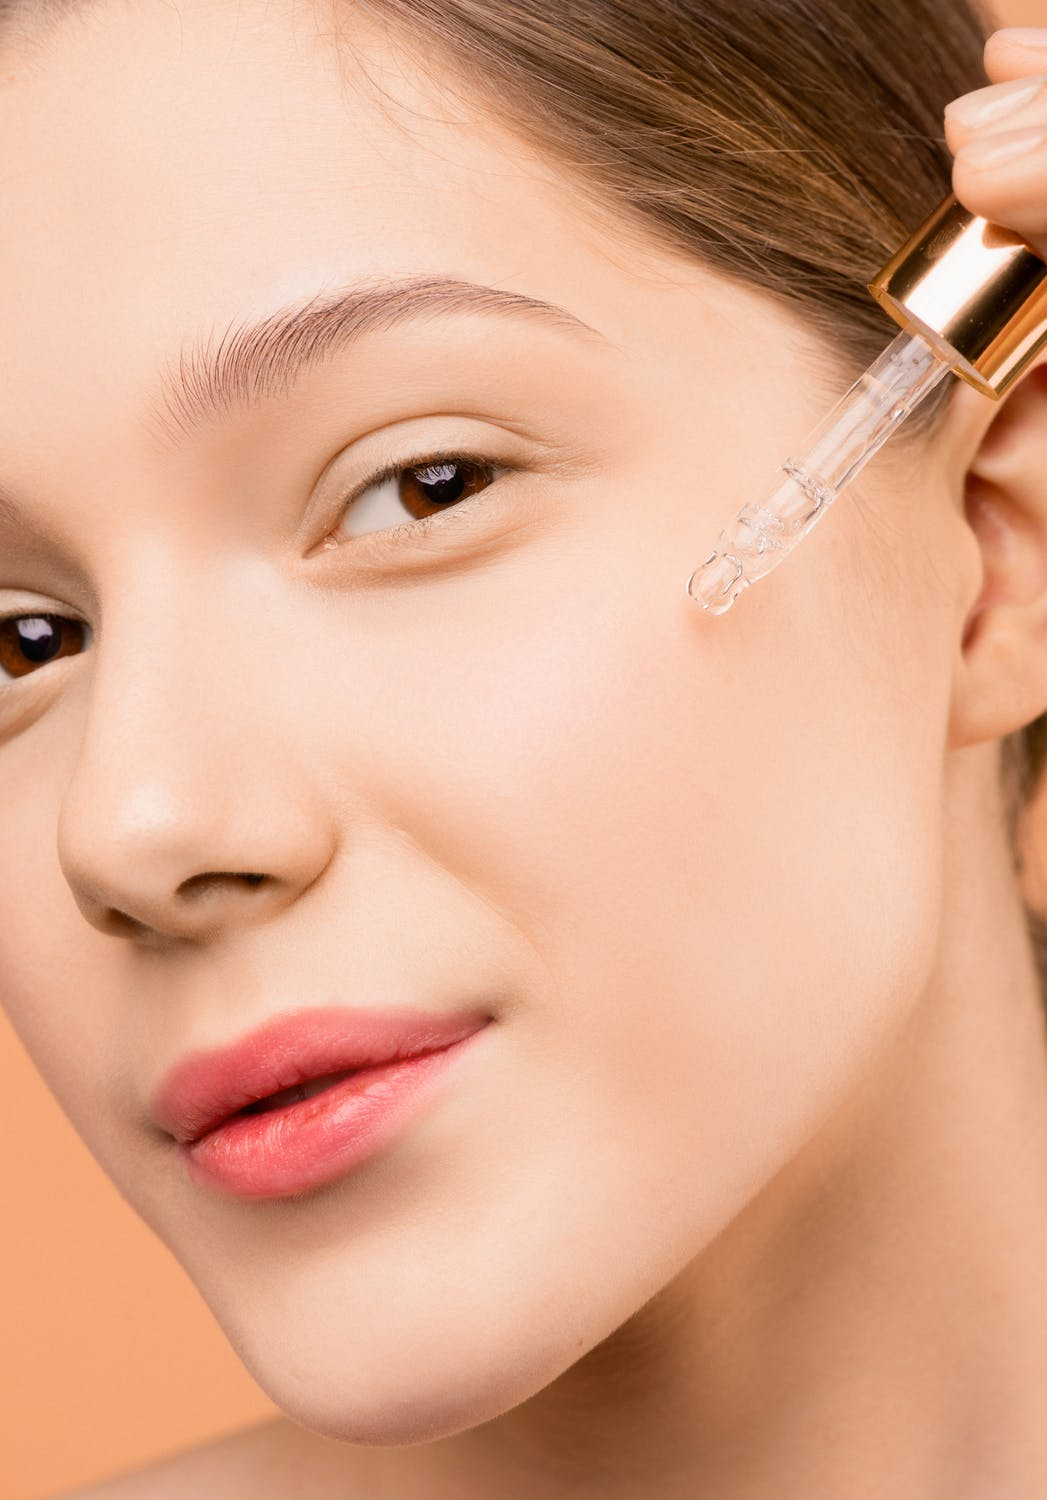 polyglutamic acid applying product for skin hydration